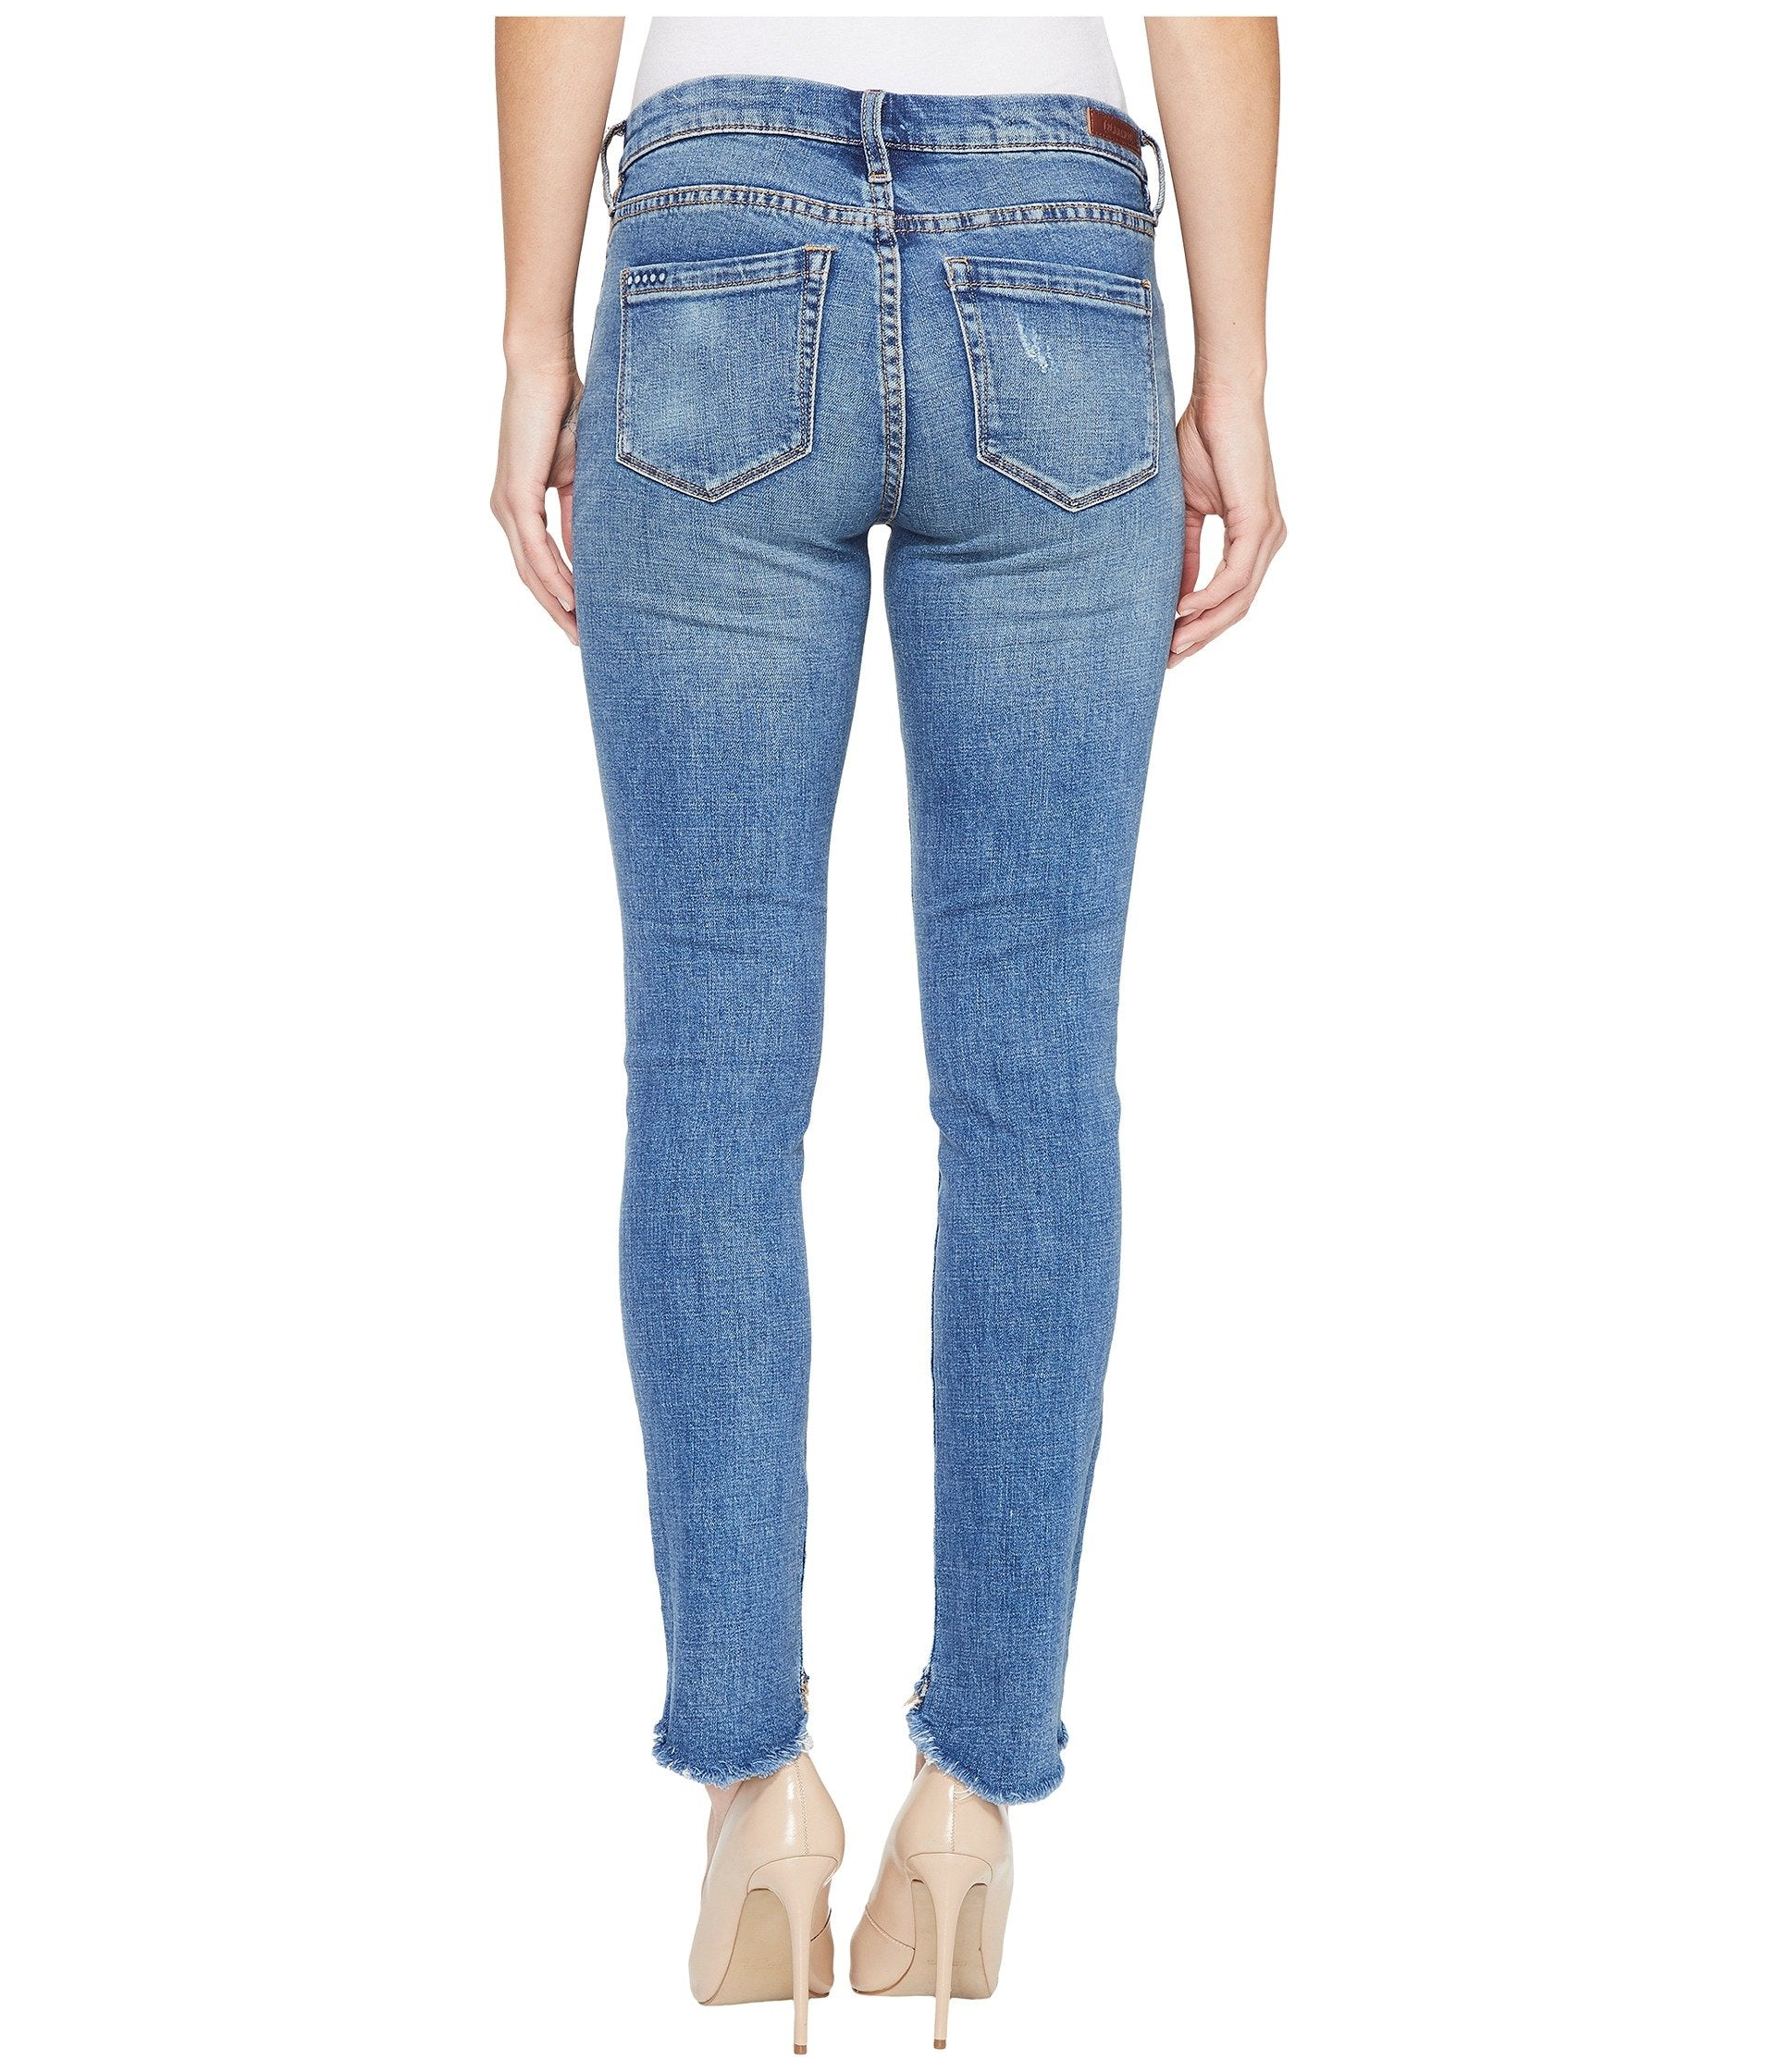 Blank Crop Jeans in App Happy